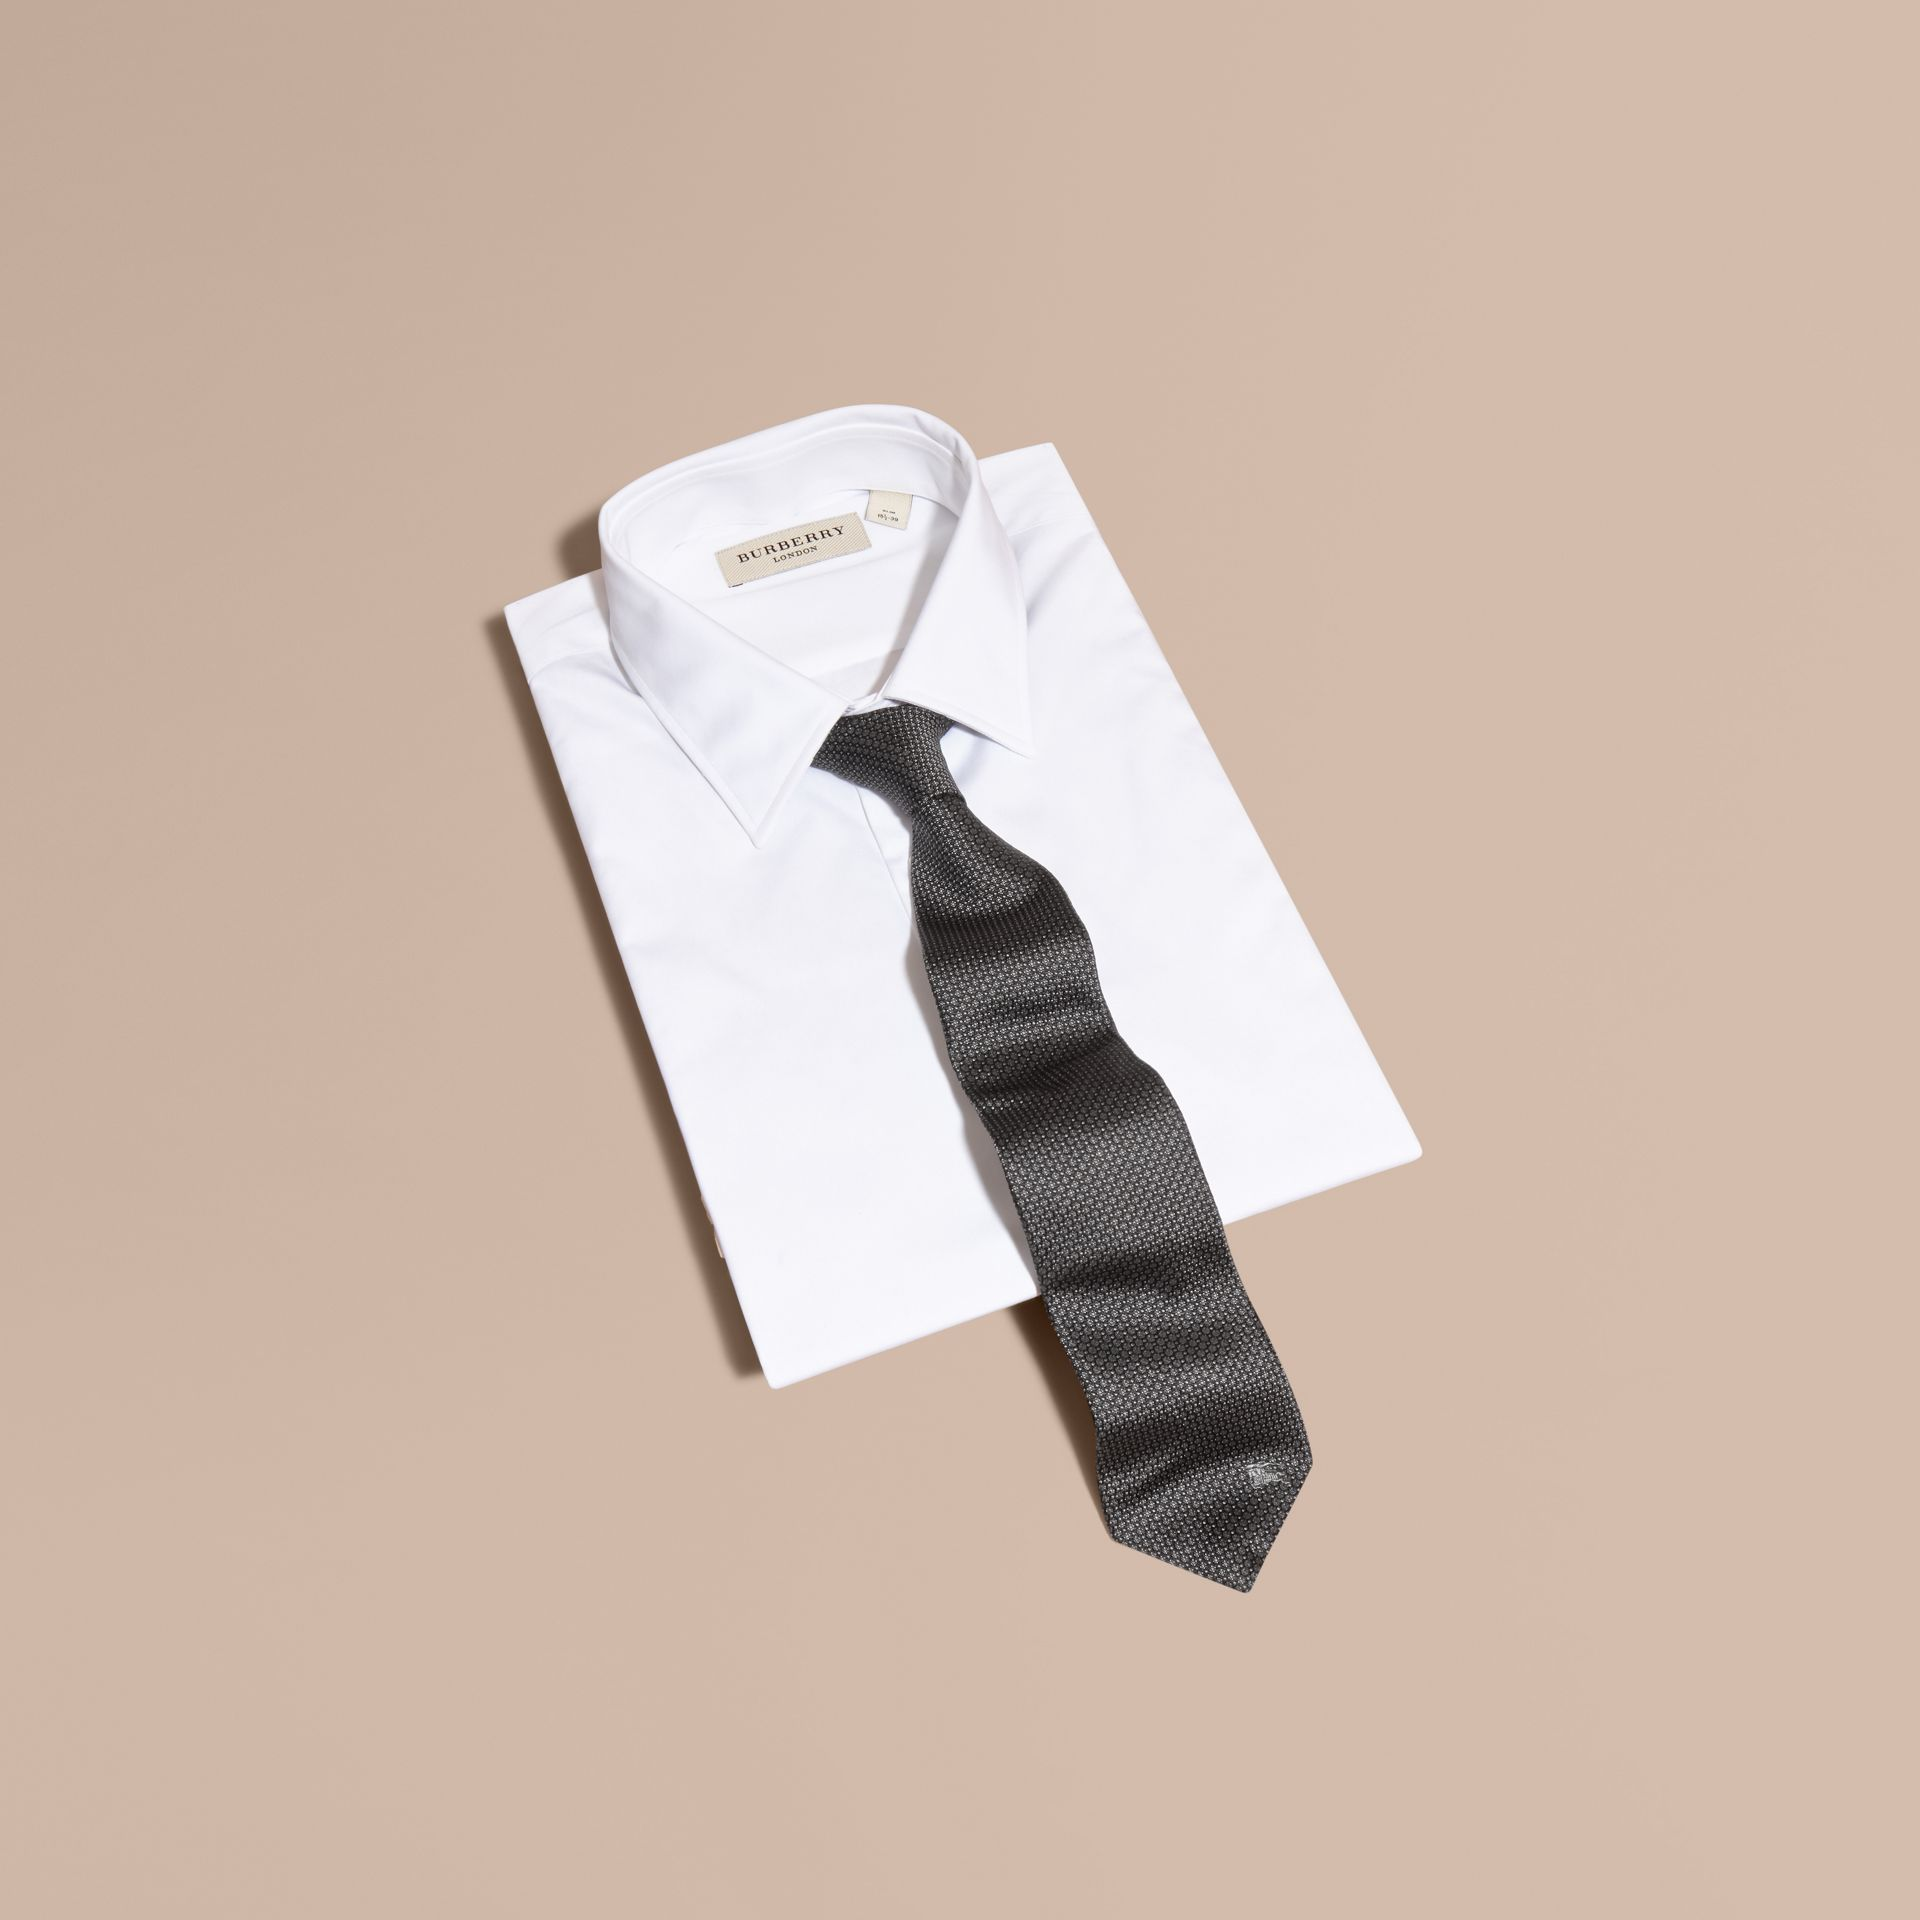 Modern Cut Patterned Silk Tie in Black - Men | Burberry - gallery image 4